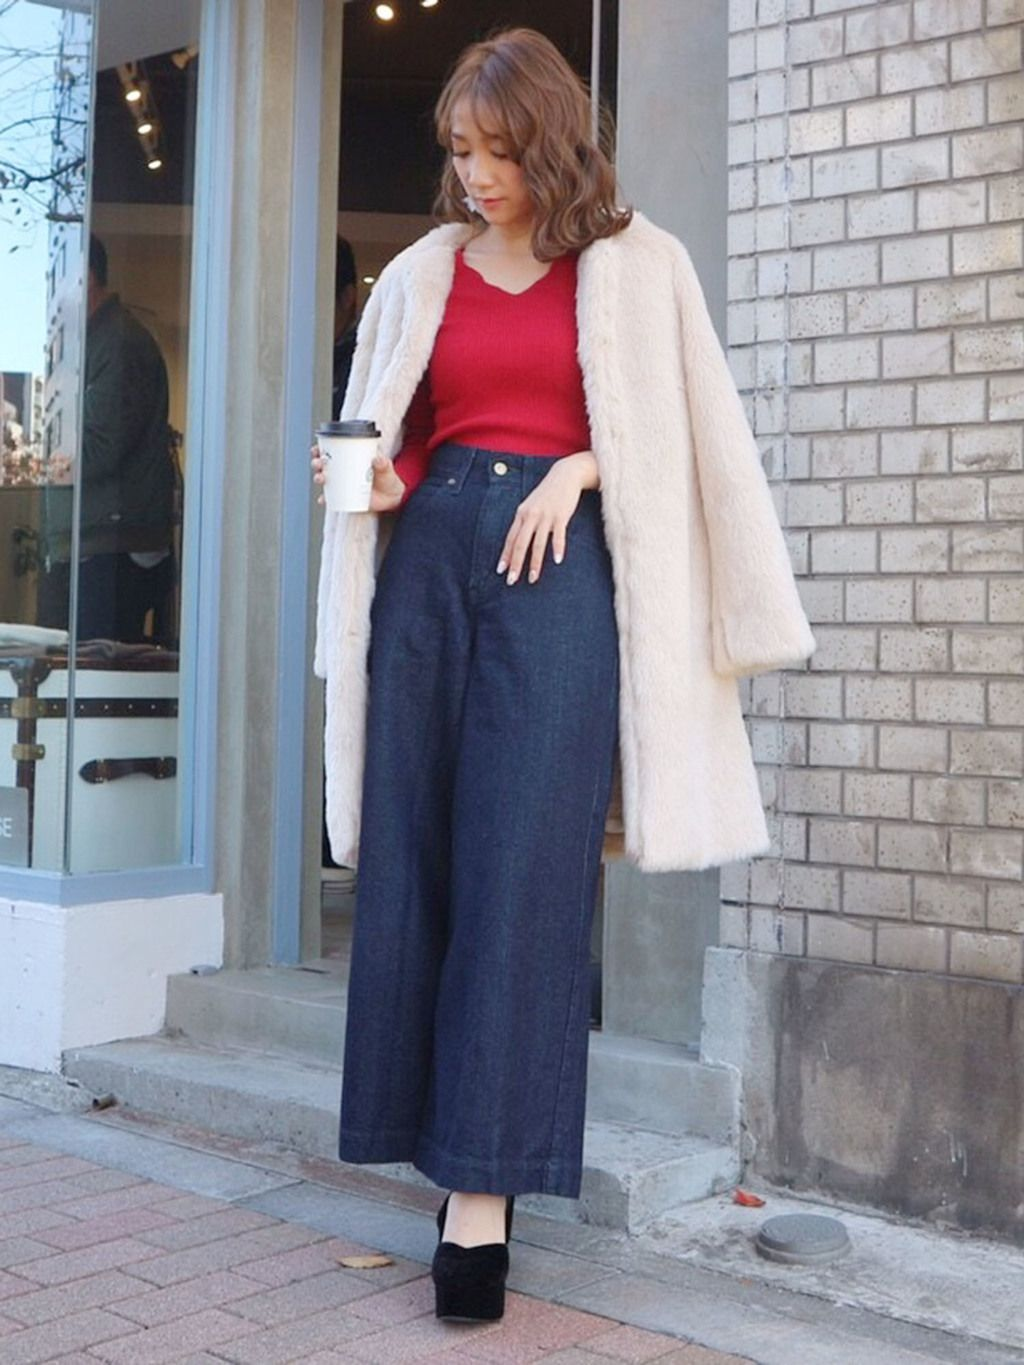 MERCURYDUO(マーキュリーデュオ) |Lee×MERCURYDUO DENIM WIDE PANTS コーデ01